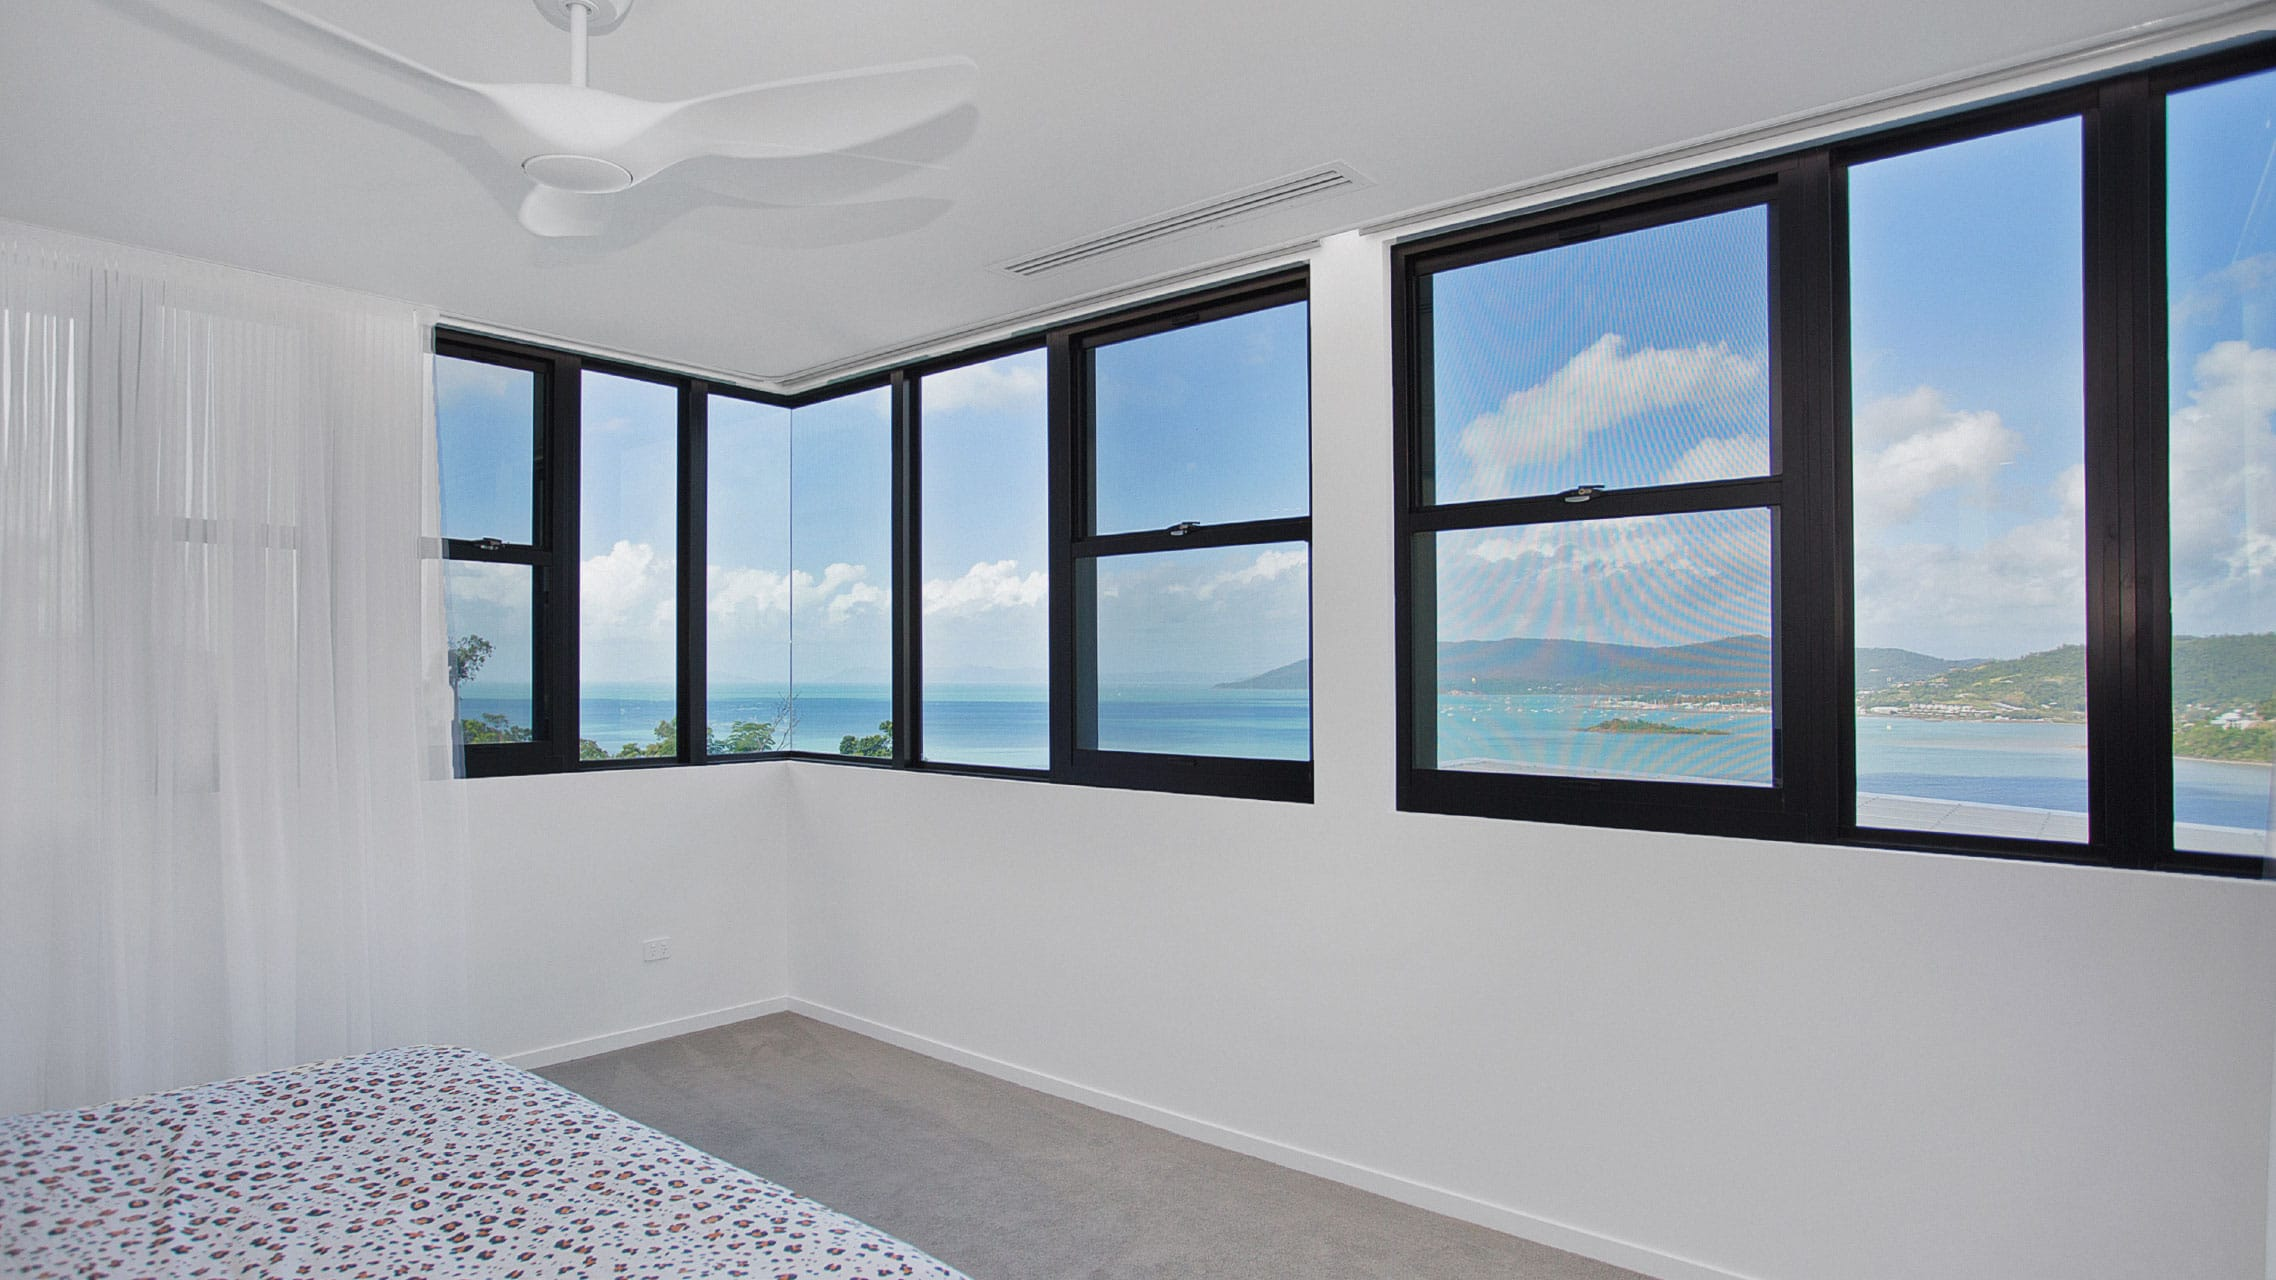 Multiple Double Hung Windows next to multiple fixed windows